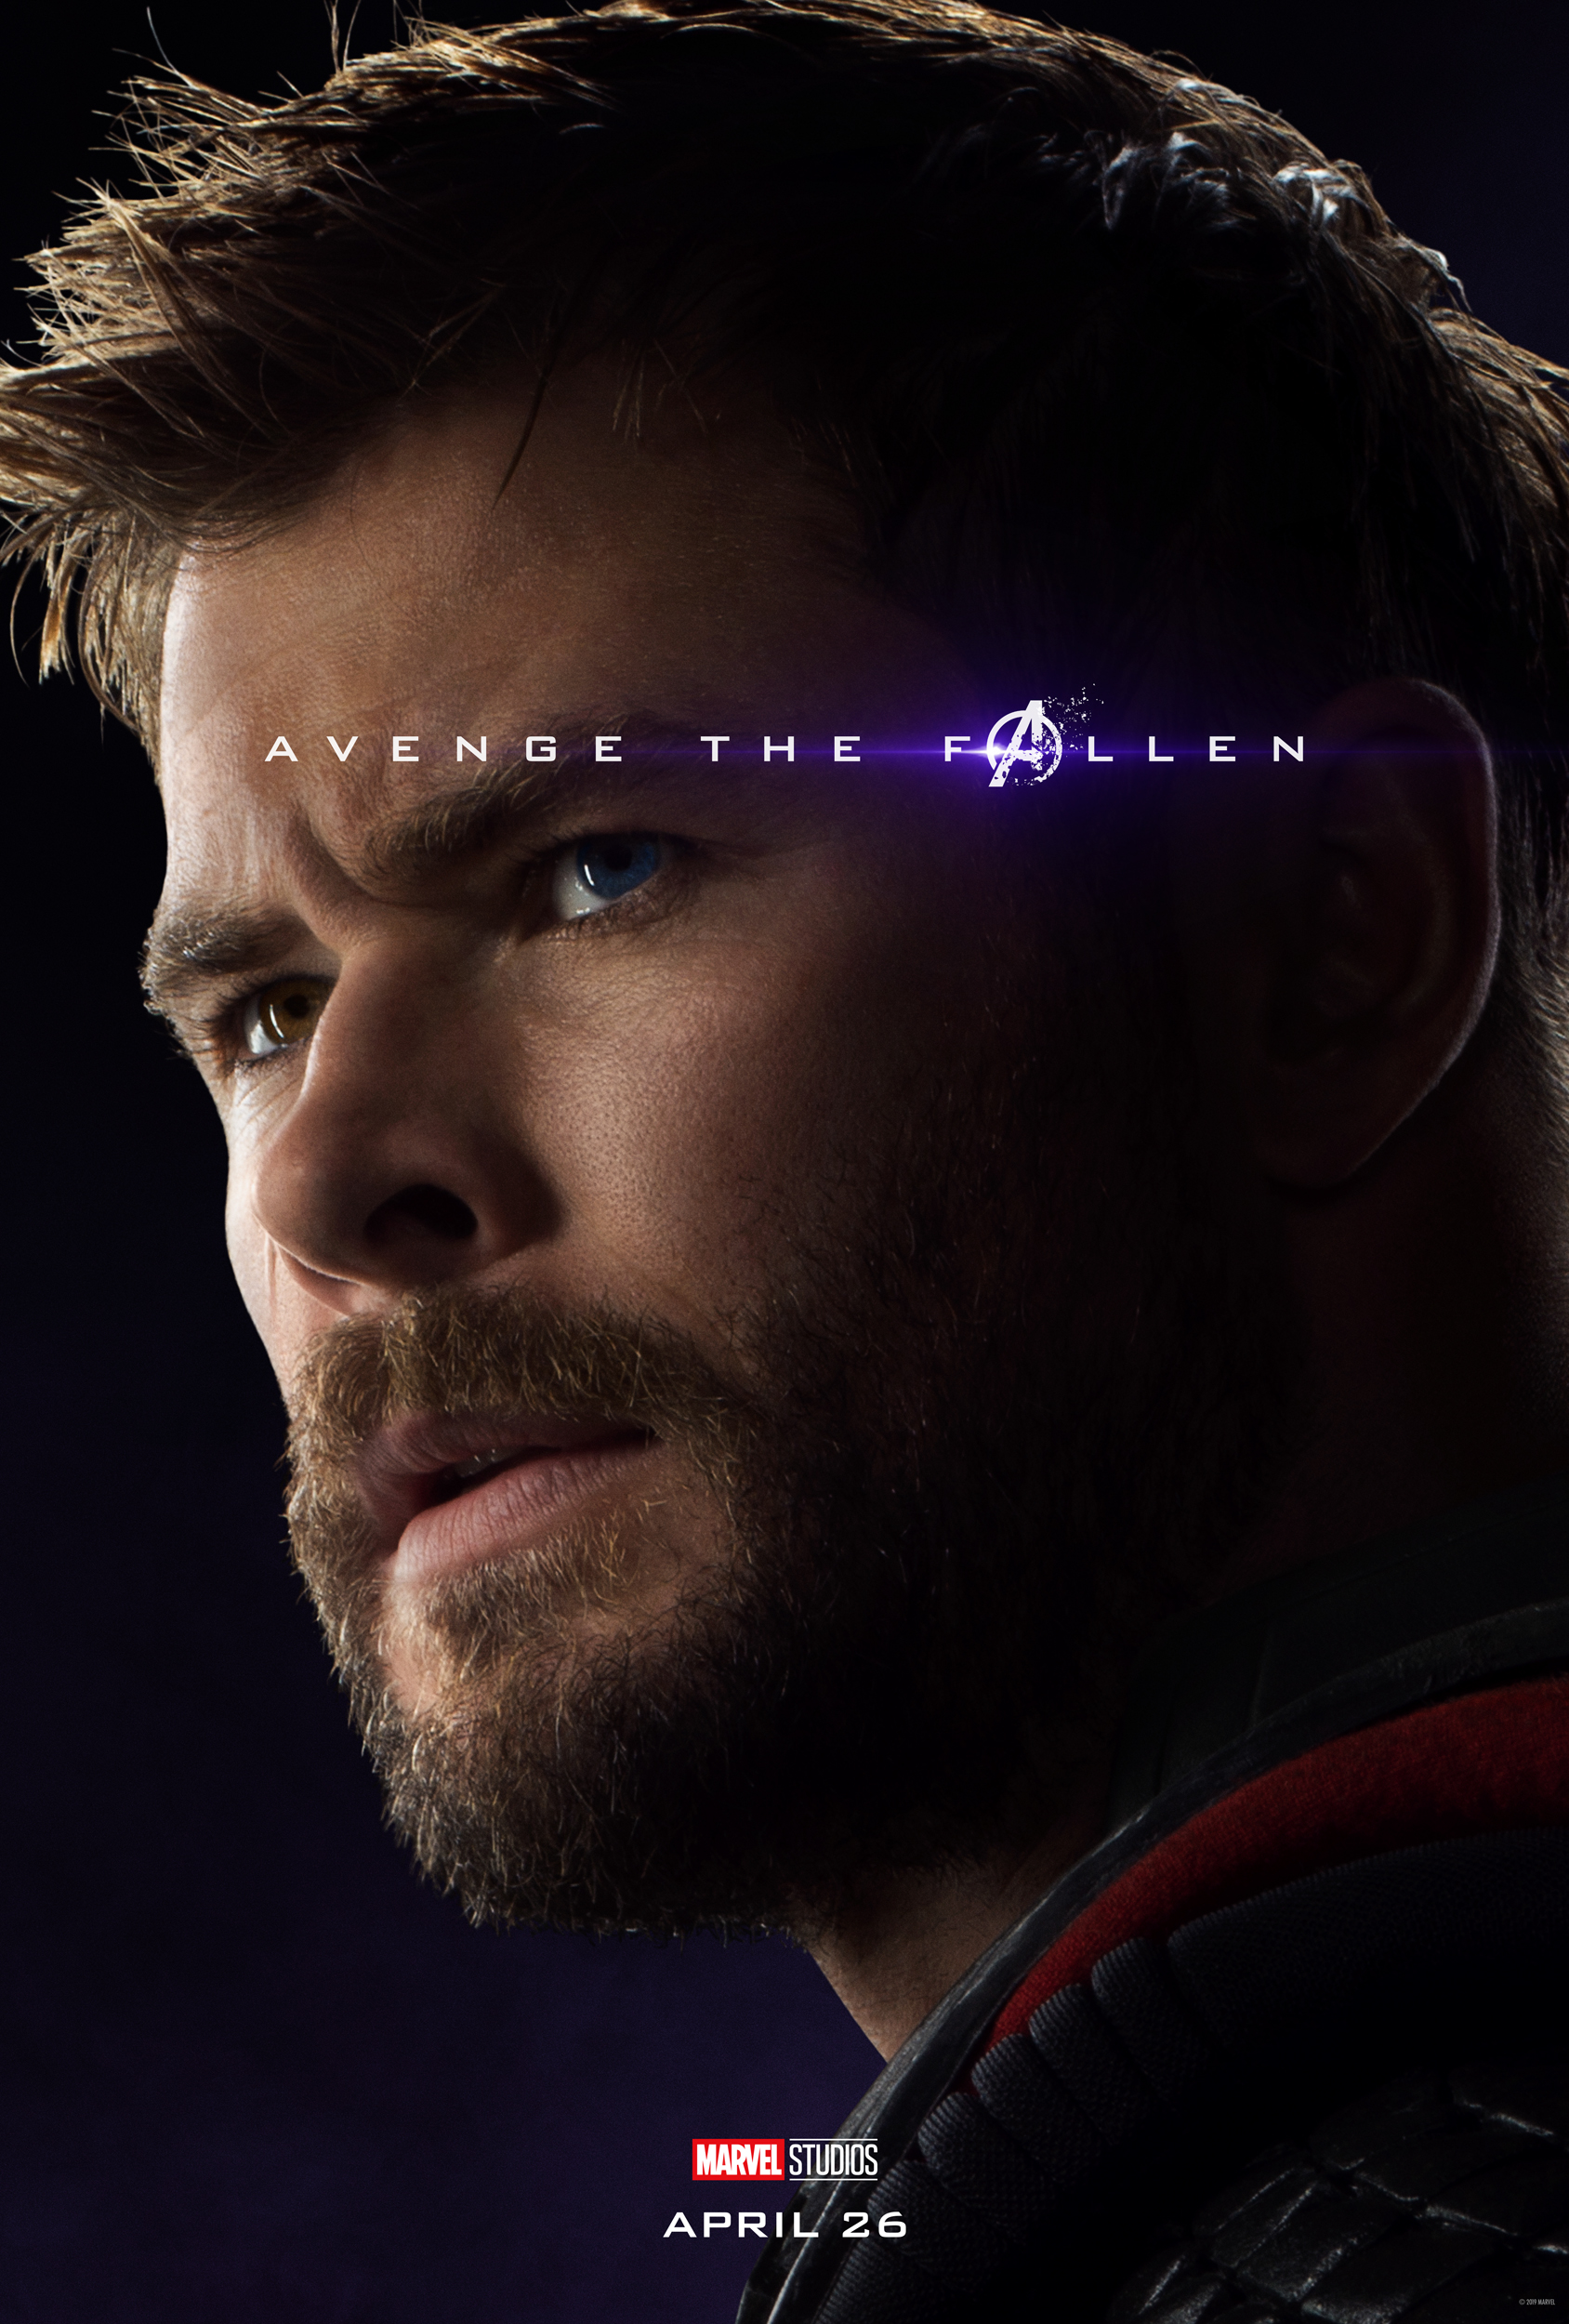 Avengers Endgame Character Posters Highlight The Living And Fallen